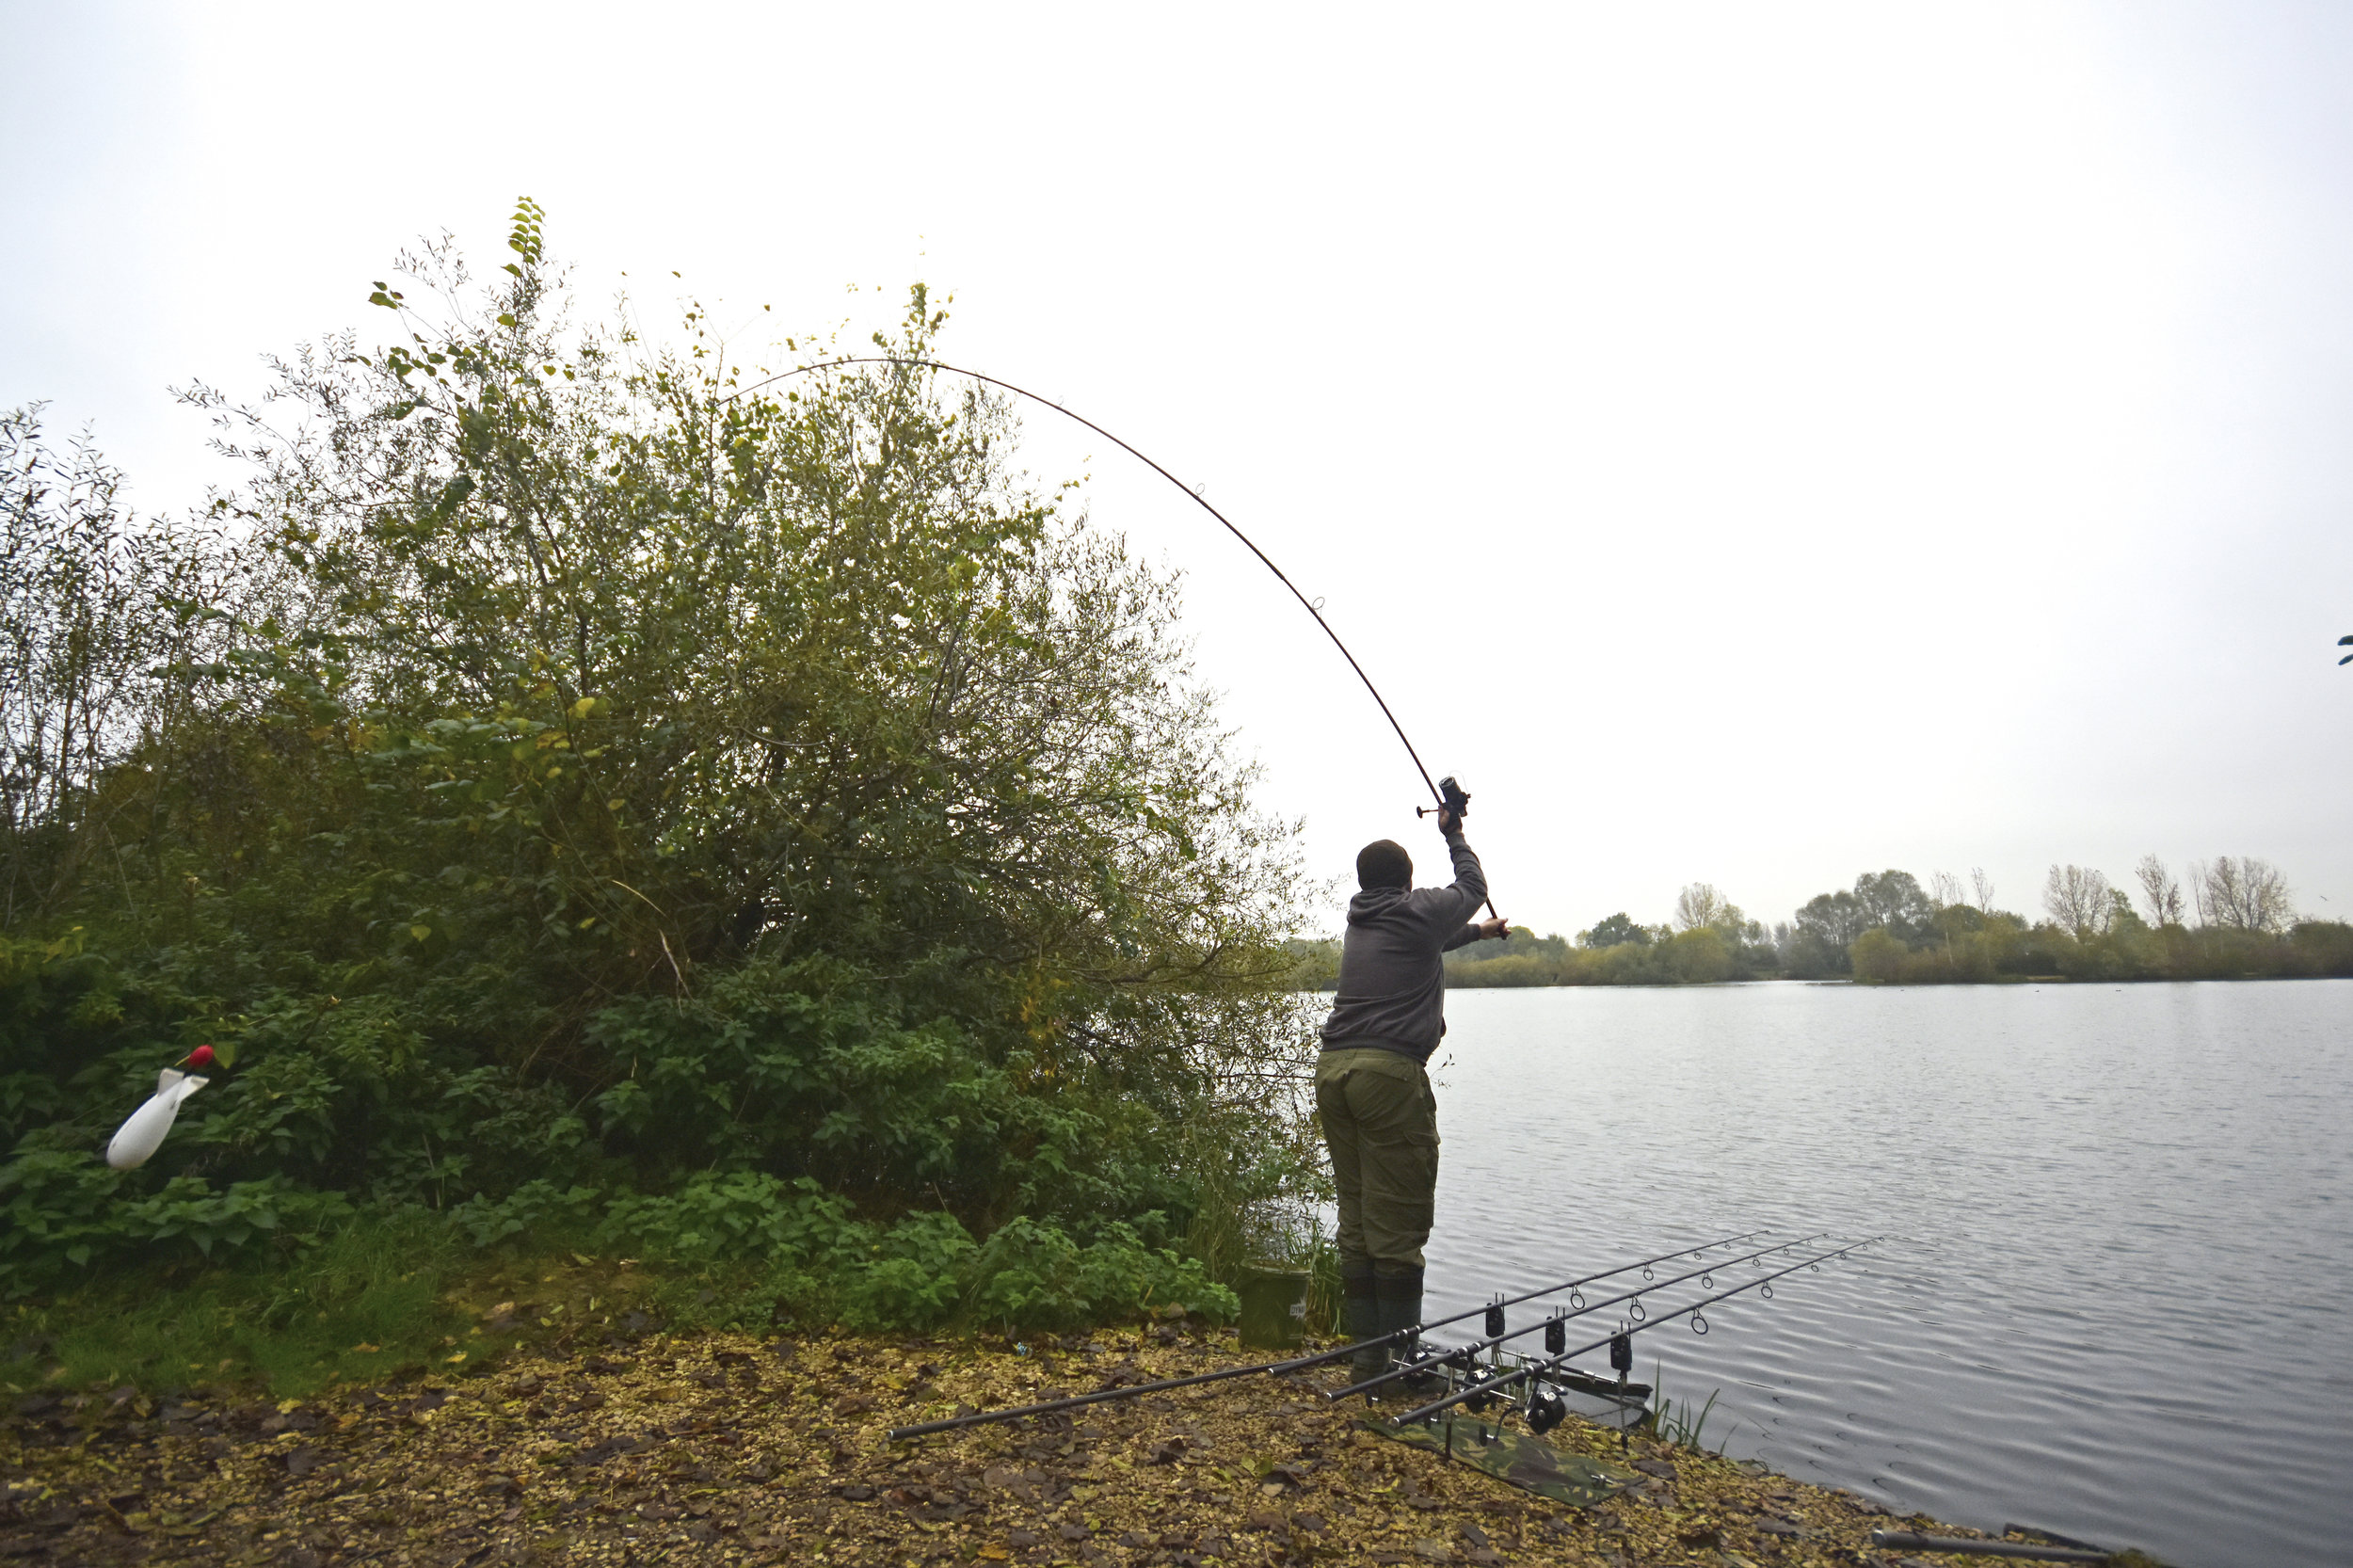 At Linear everyone spods, but it s usually the same type of mix - hemp, corn and boilies.